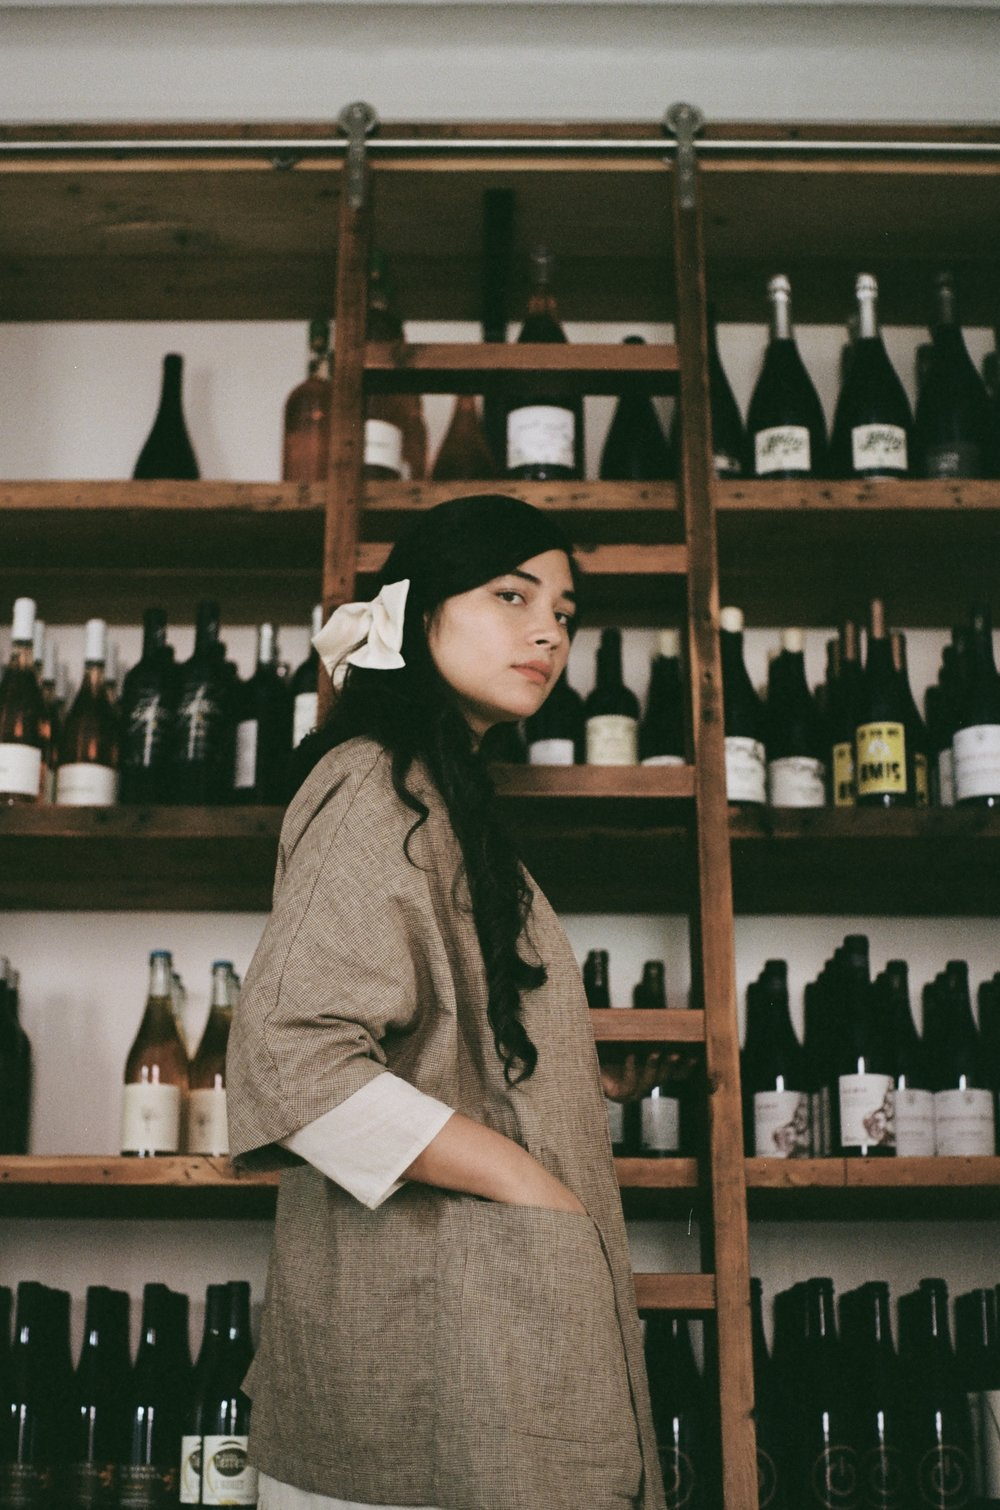 Lane wearing her Ruth jacket from SS18, in the wine storage room of her new offices adjacent to Fadensonnen.